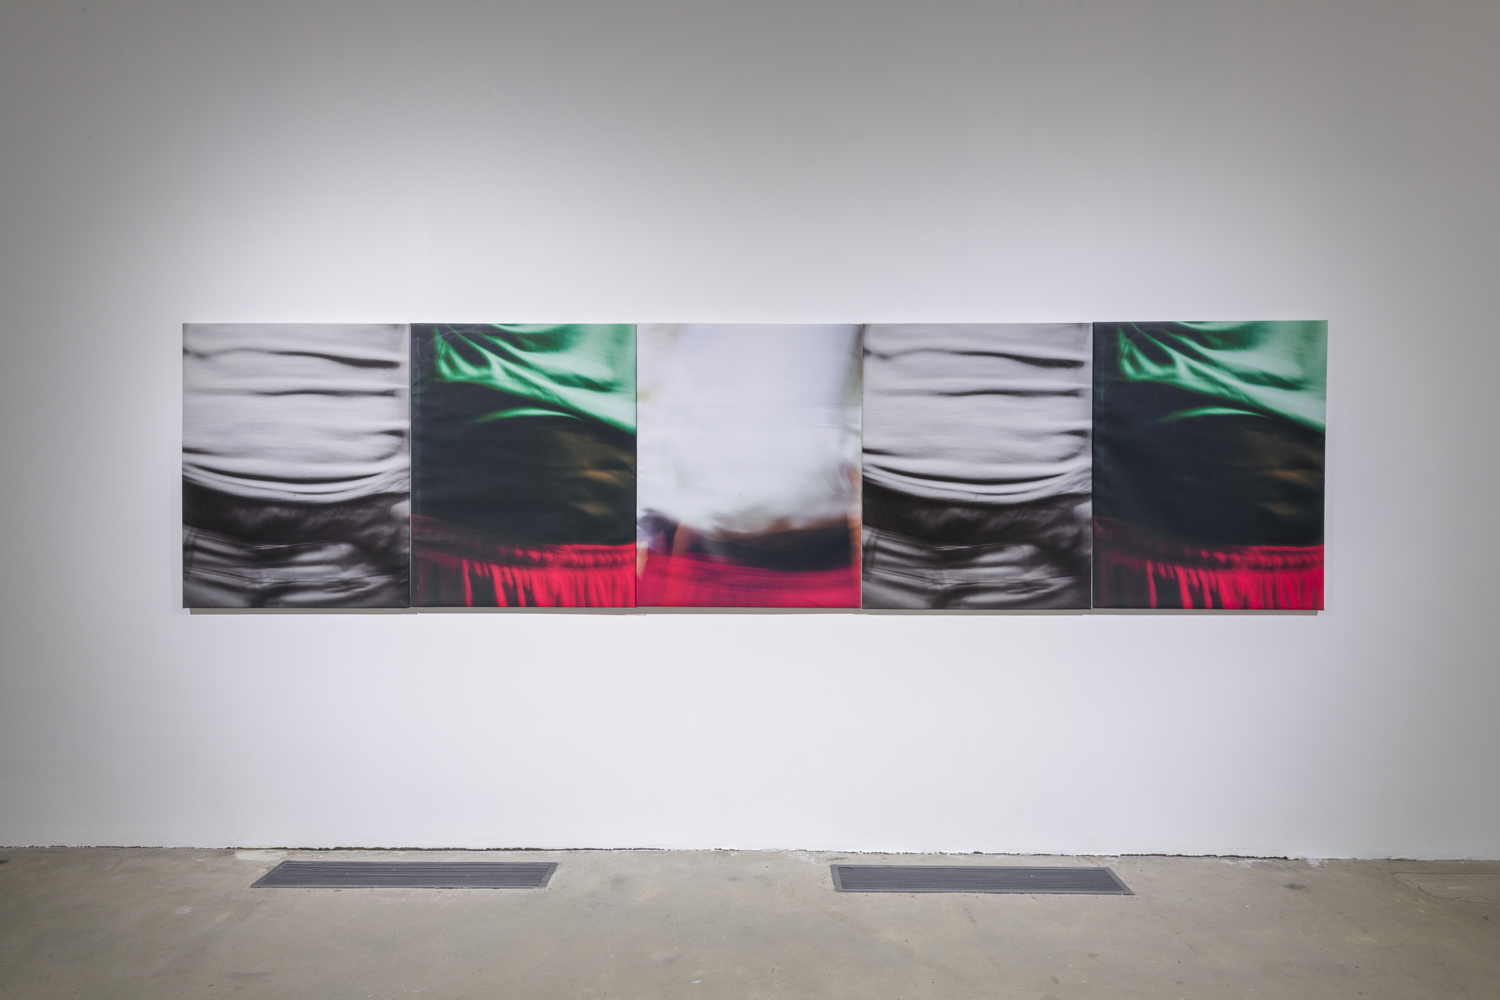 This is an artwork installation by the artist David Alekhuogie featuring five photographs printed on canvas. Each of these photographs depict slightly different angles of figures wearing saggy pants and in different colors. The far left photograph depicts a figure wearing a crinkled white top and grey crinkled pants viewed mid torso to the top of the pants, while the photograph to the right of this work depicts another figure wearing a green top and red elastic-waisted pants viewed mid torson to the top of the pants; the green top is pulled up higher than the other photograph. These two photographs are also shown in reverse order (photograph of the figure wearing a green top and red elastic-waisted pants on the far right) on the right side. In the middle of these two suites of photographs is another photograph of a blurry figure wearing red elastic-waisted pants. The top portion is white with no fabric wrinkles or creases visible. These five artworks are placed side-by-side in a row.